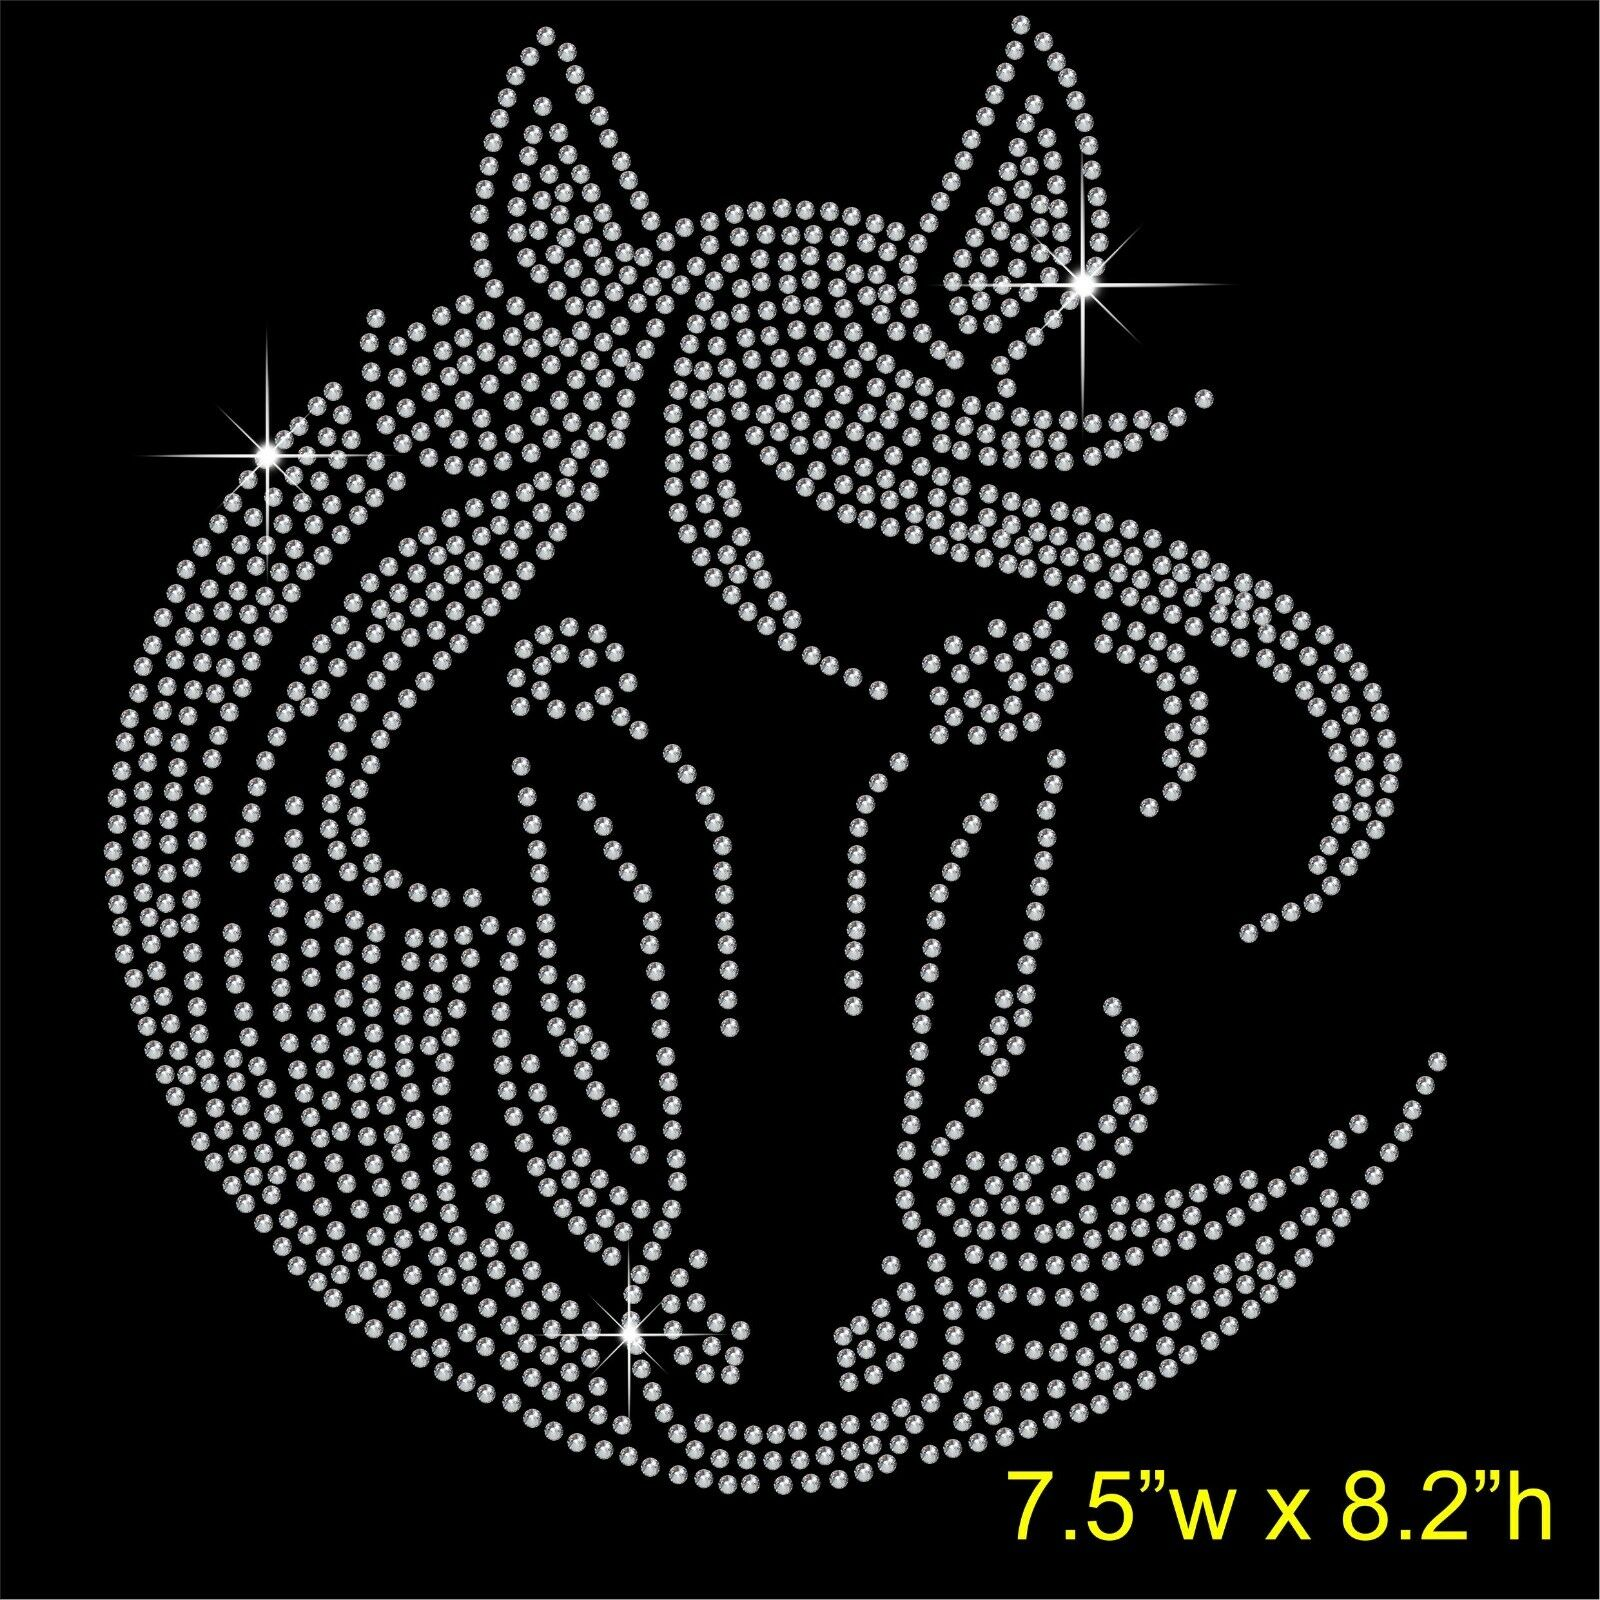 Rhinestone horse and rider hot fix transfer outline